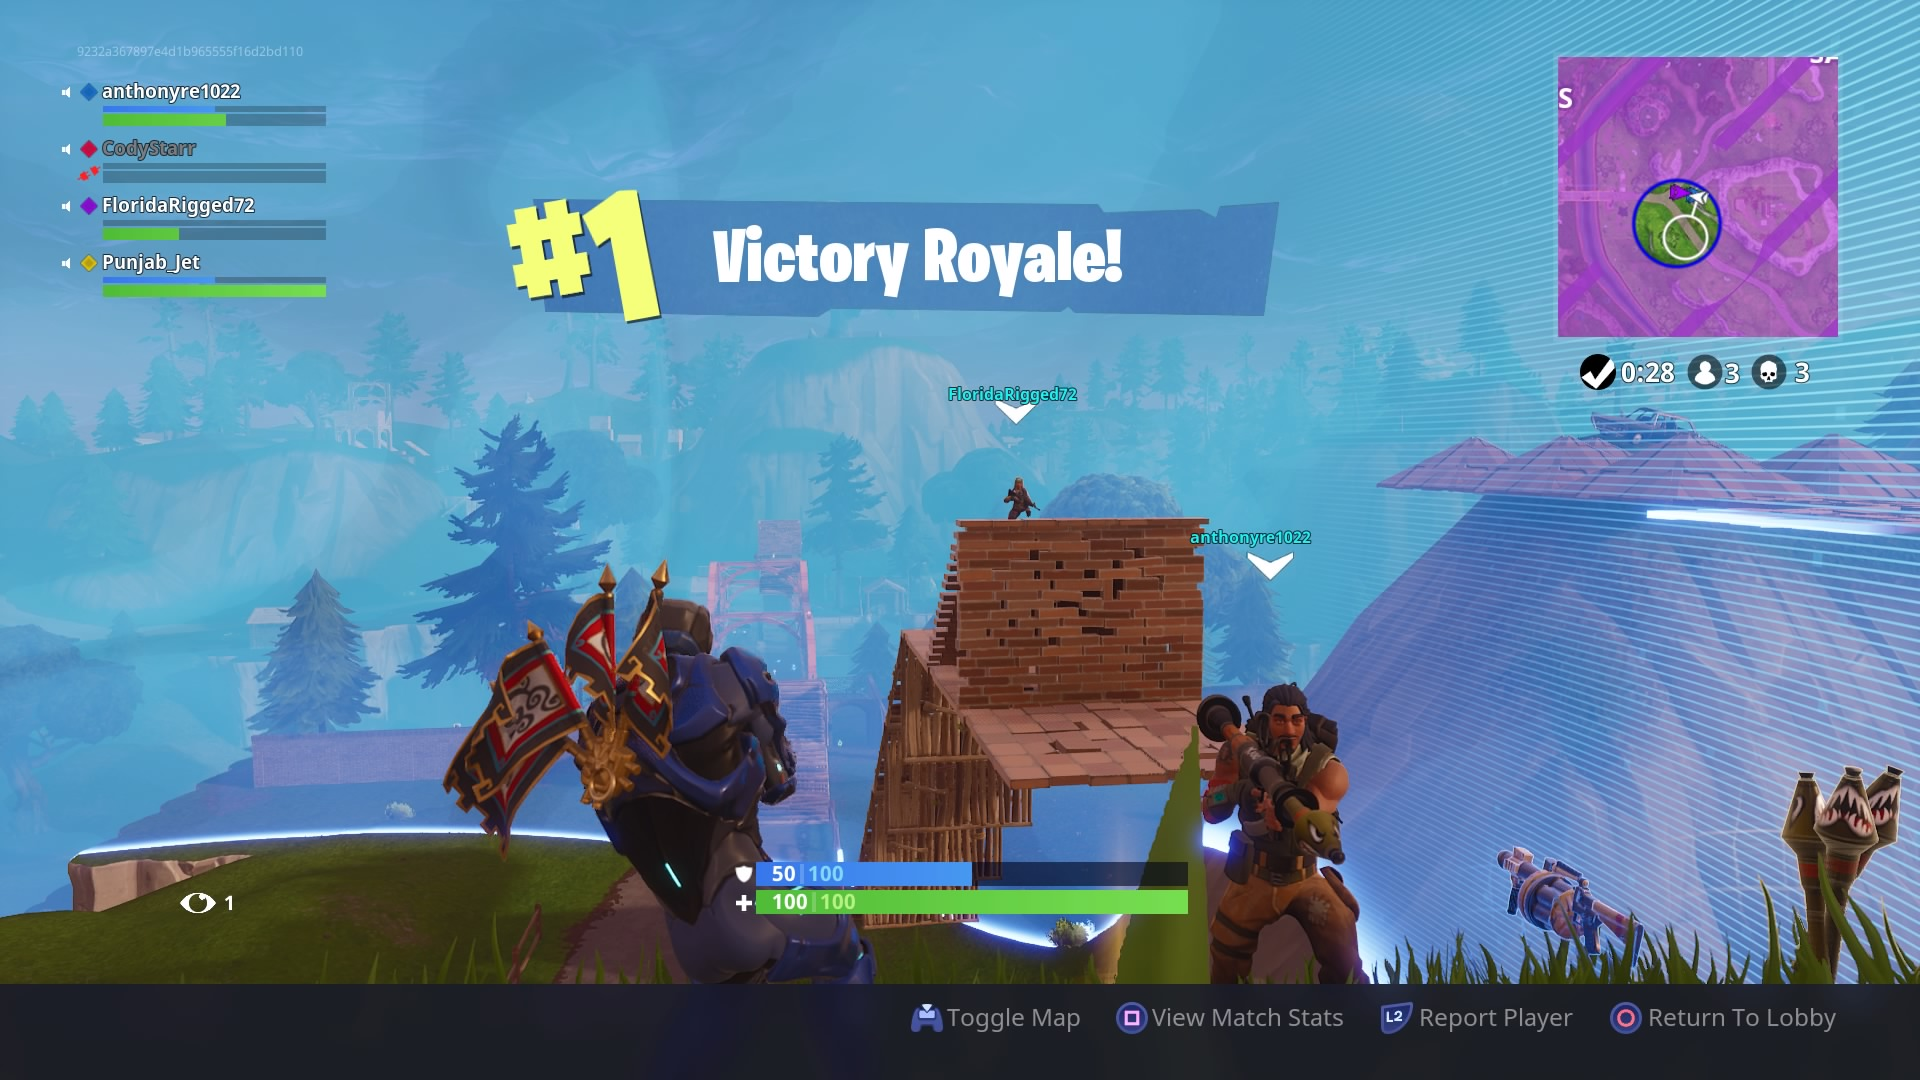 fortnite victory royale desktop wallpaper 797